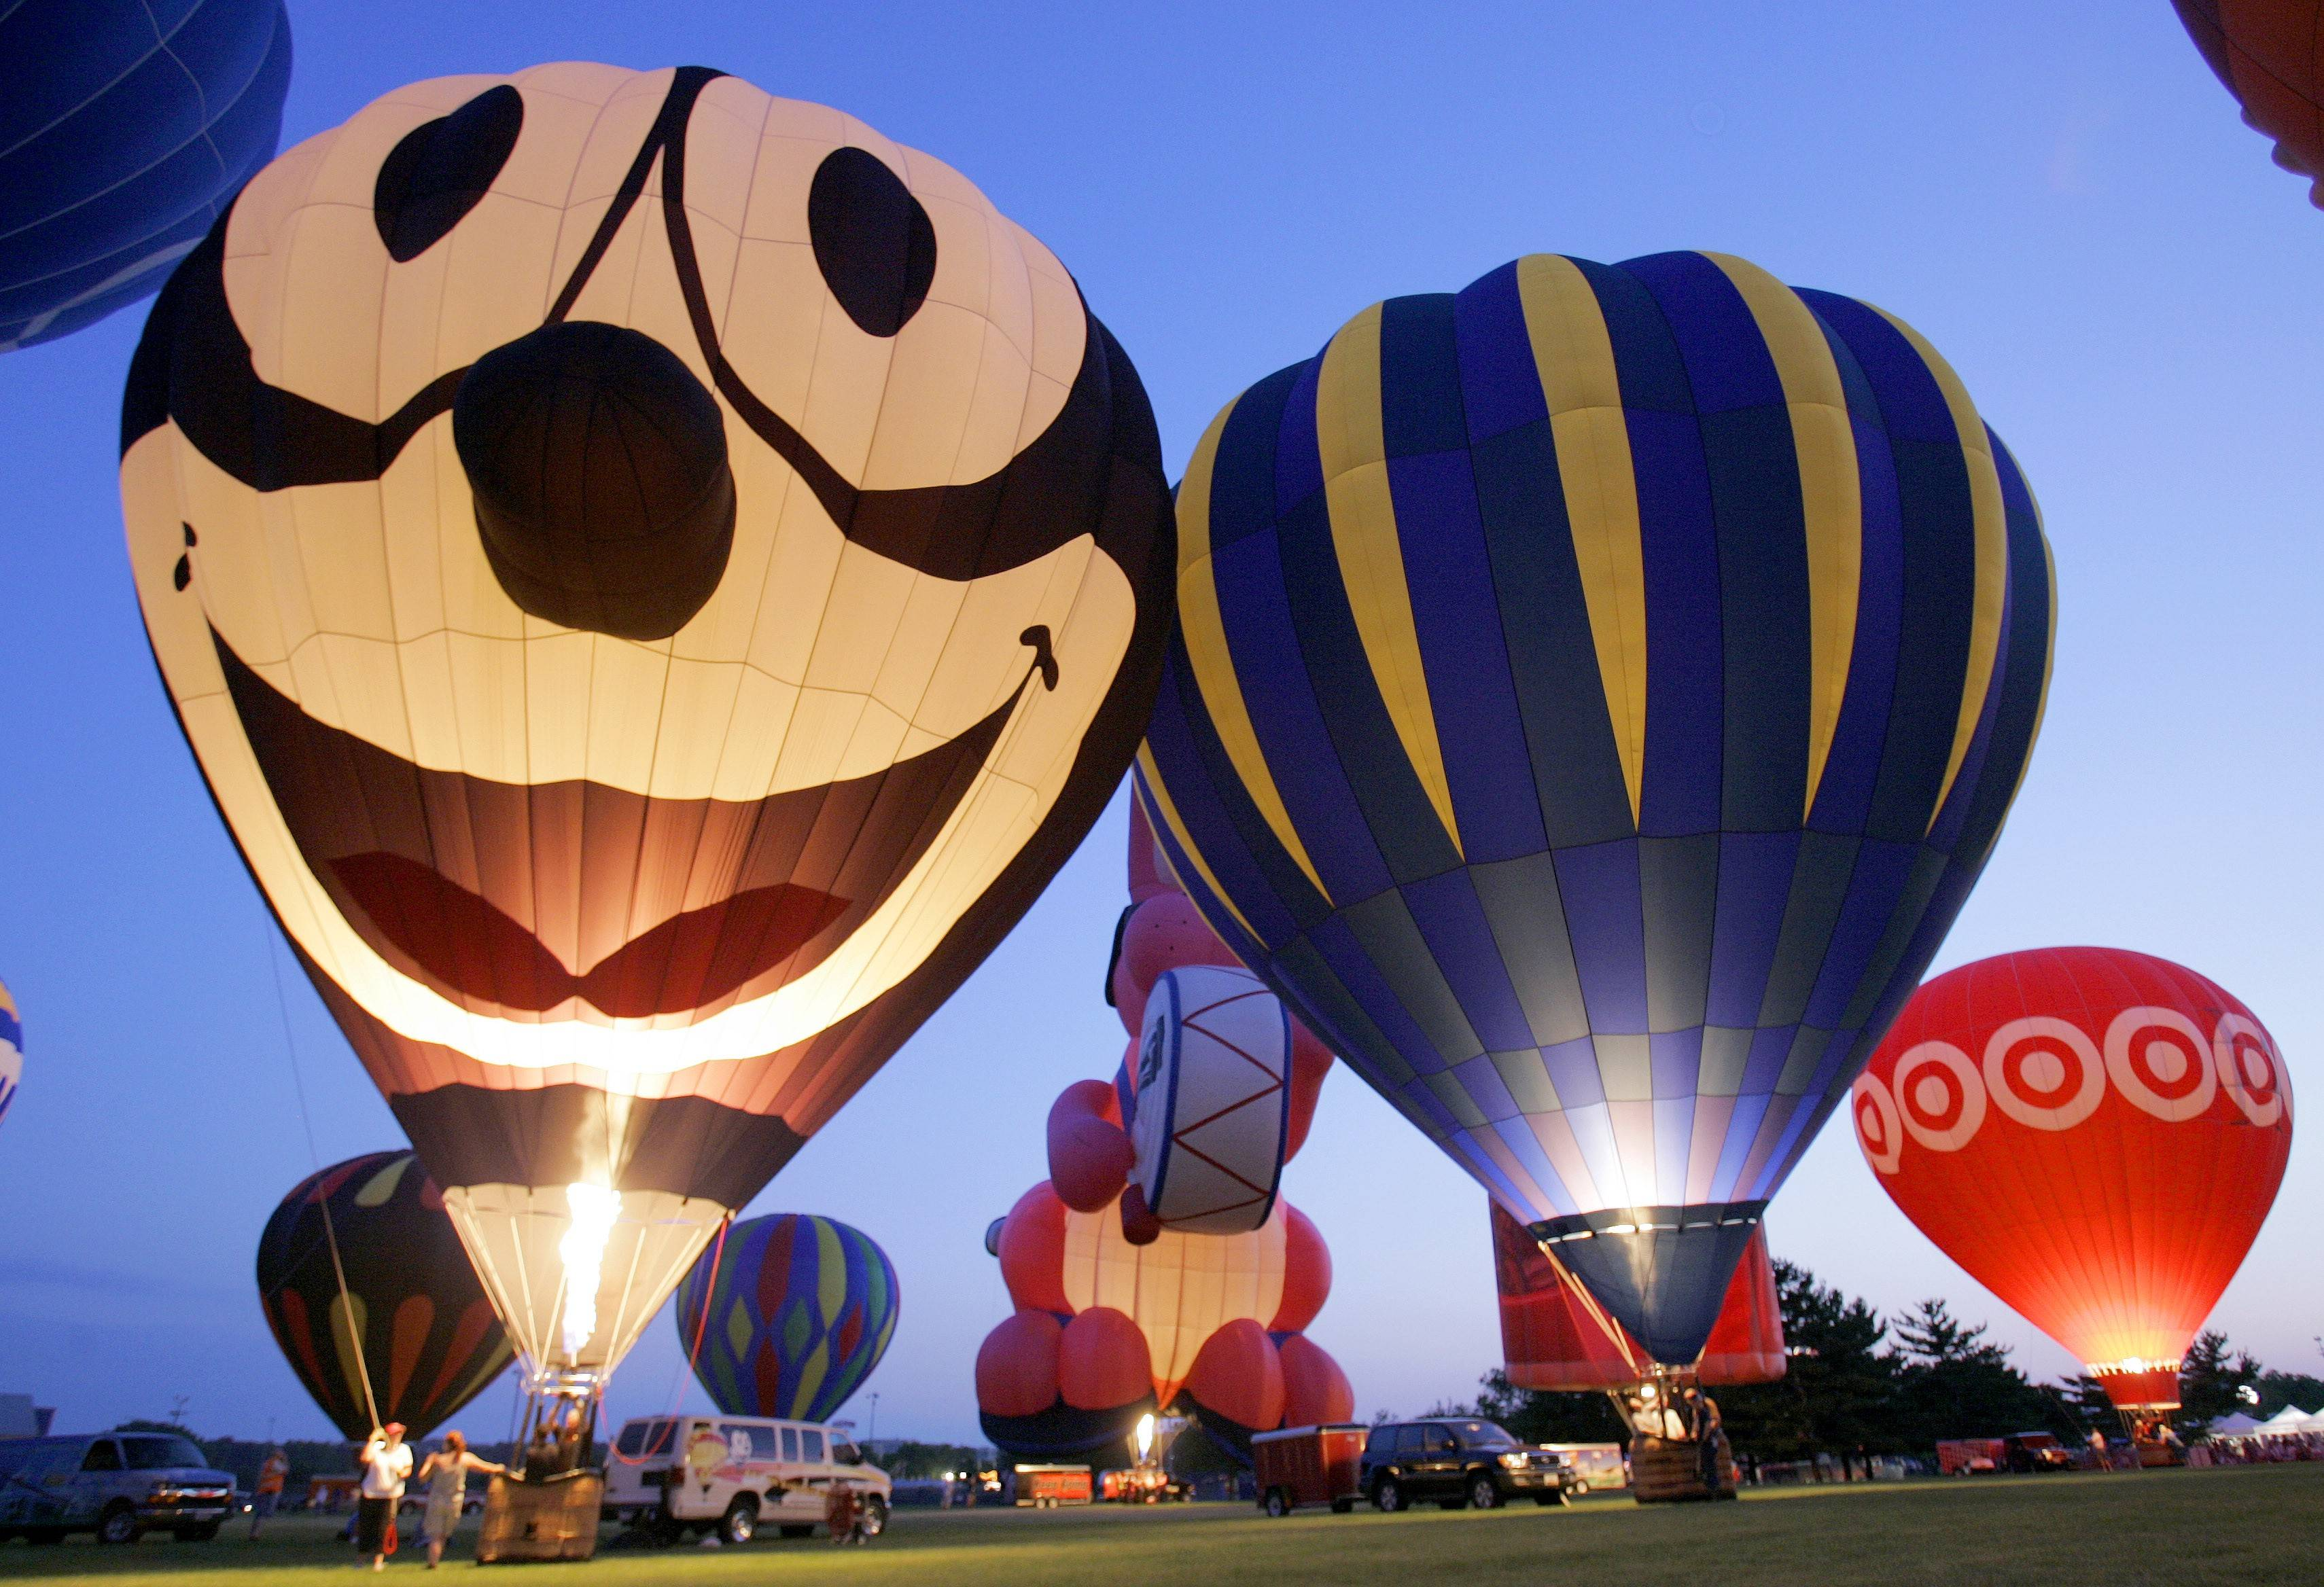 What's new at Lisle's Eyes to the Skies balloon festival? Motocross